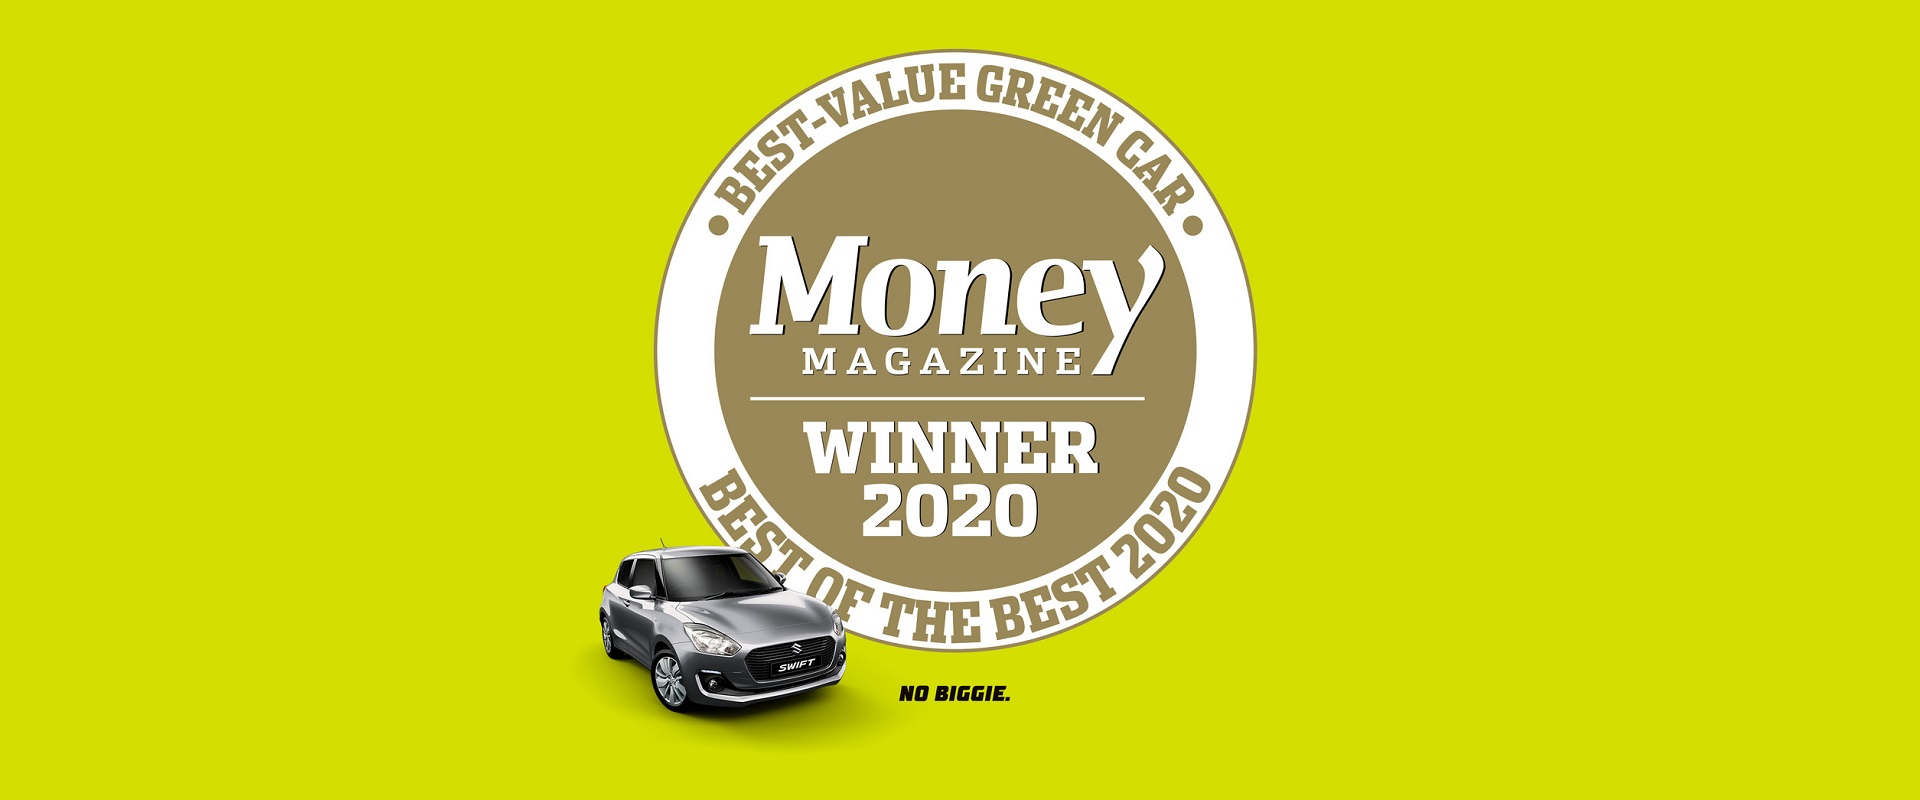 Suzuki Swift - Best of the Best 2020